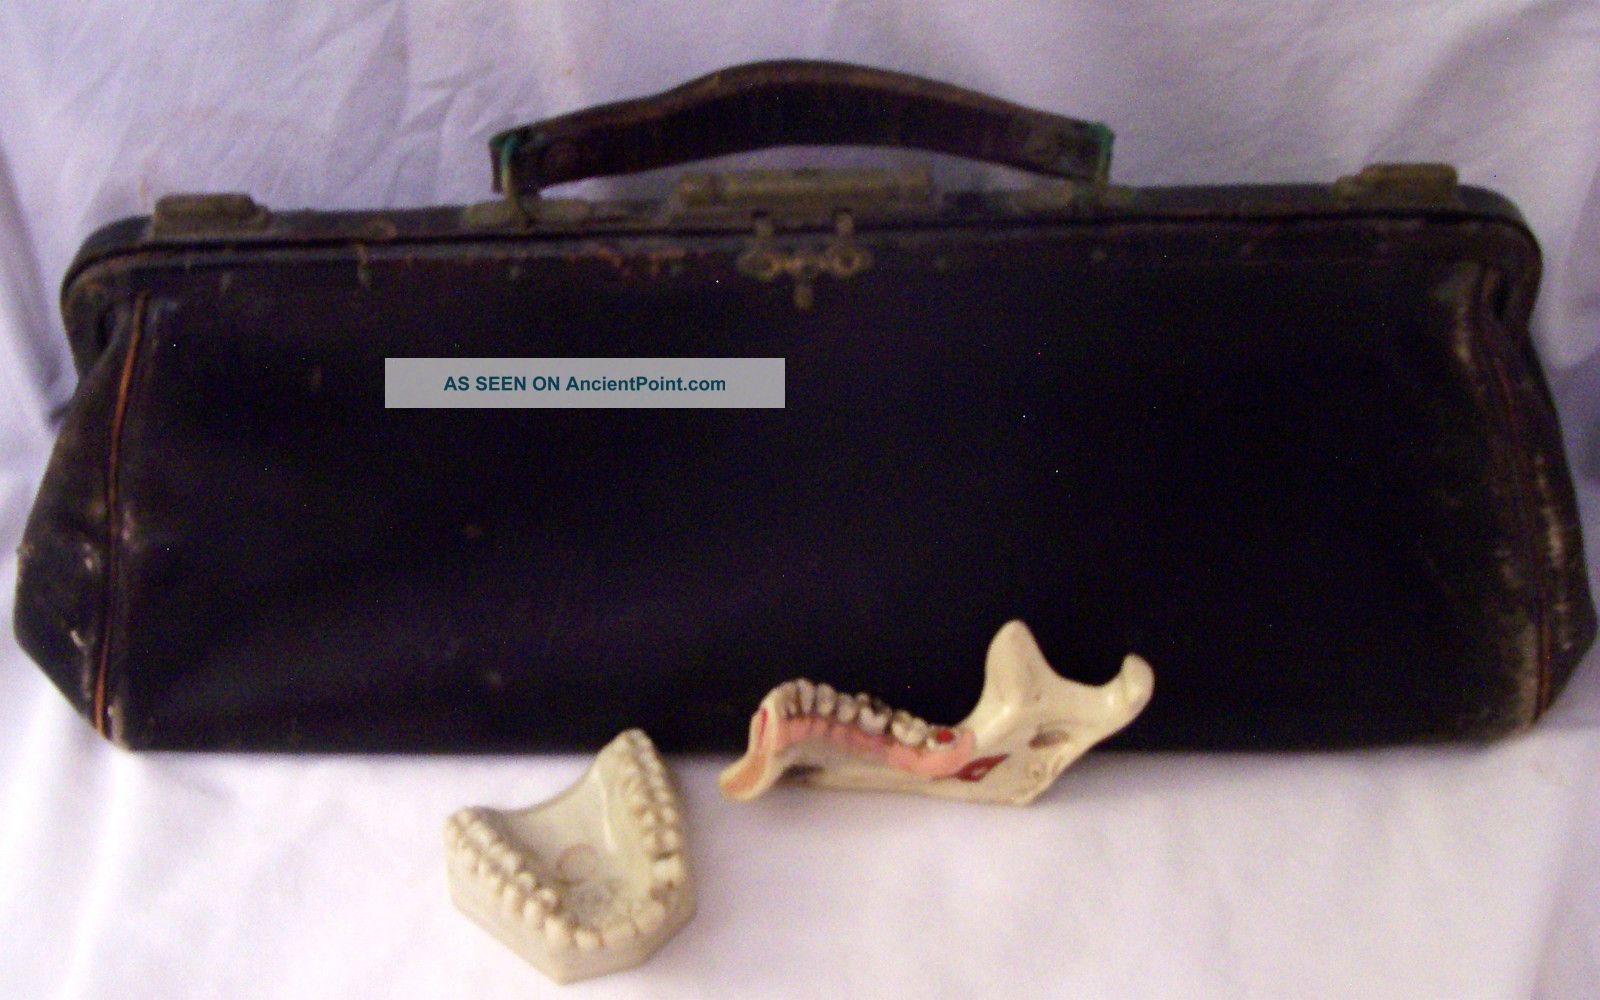 Antique Medical Bag W/ Dental Teeth Vintage Dental Teaching Teeth & Medical Bag Doctor Bags photo